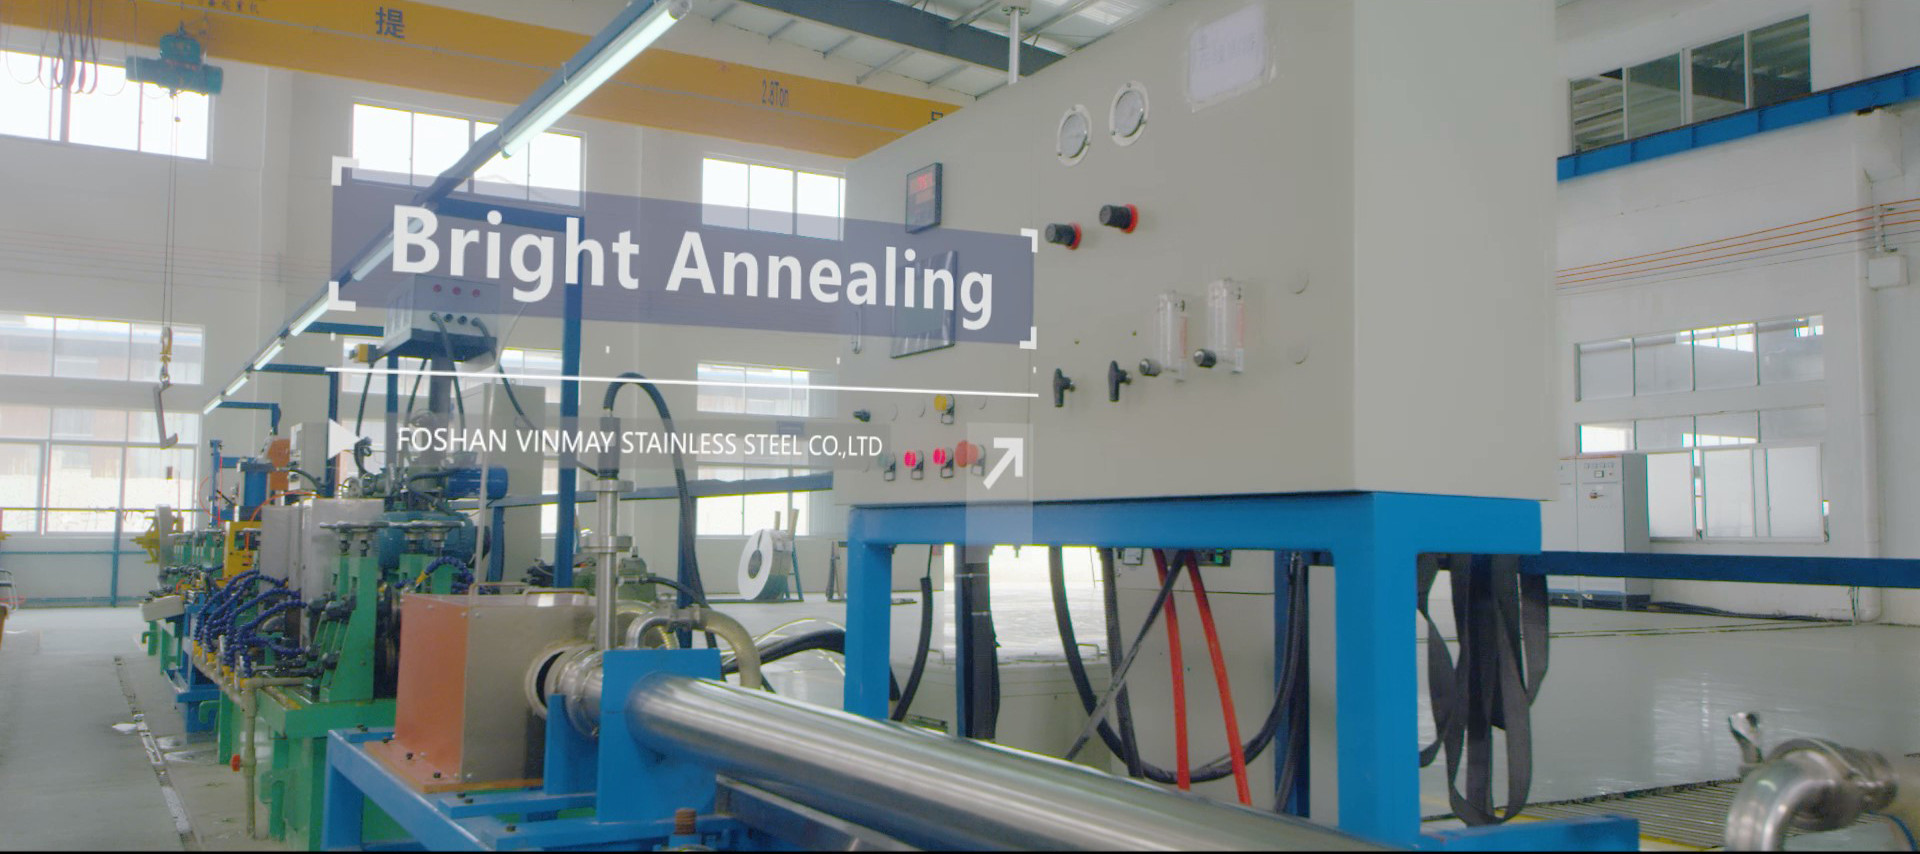 Bright Annealing